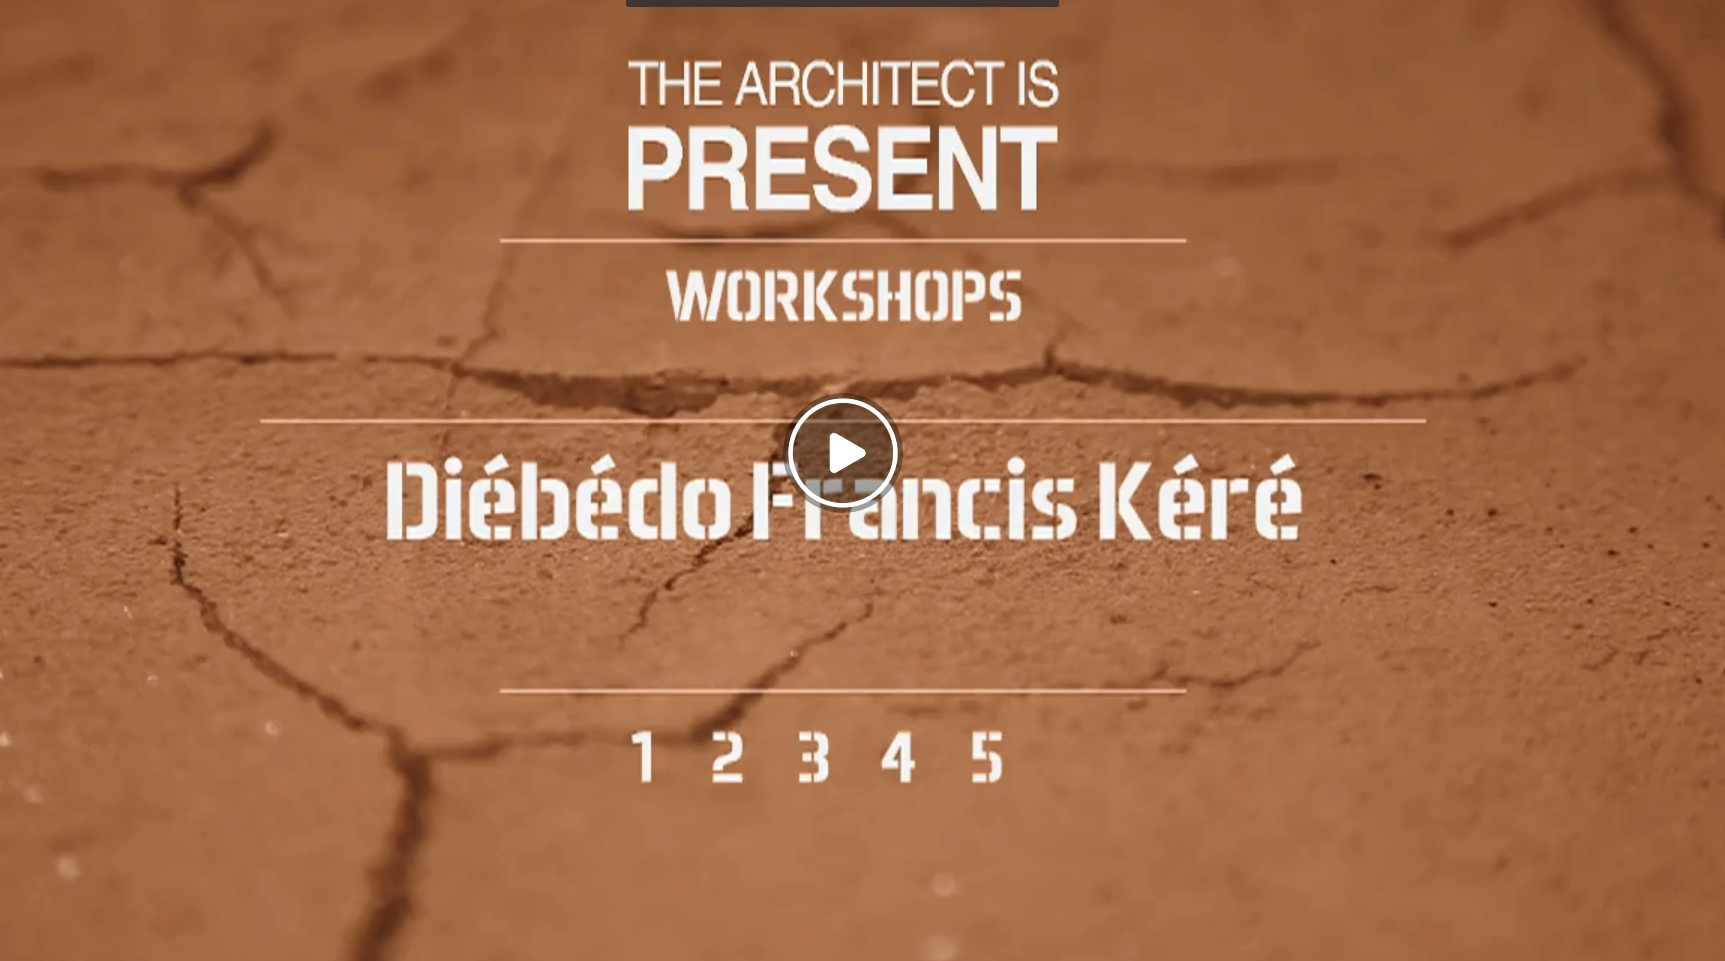 The Architect is Present I - Diébédo Francis Kéré